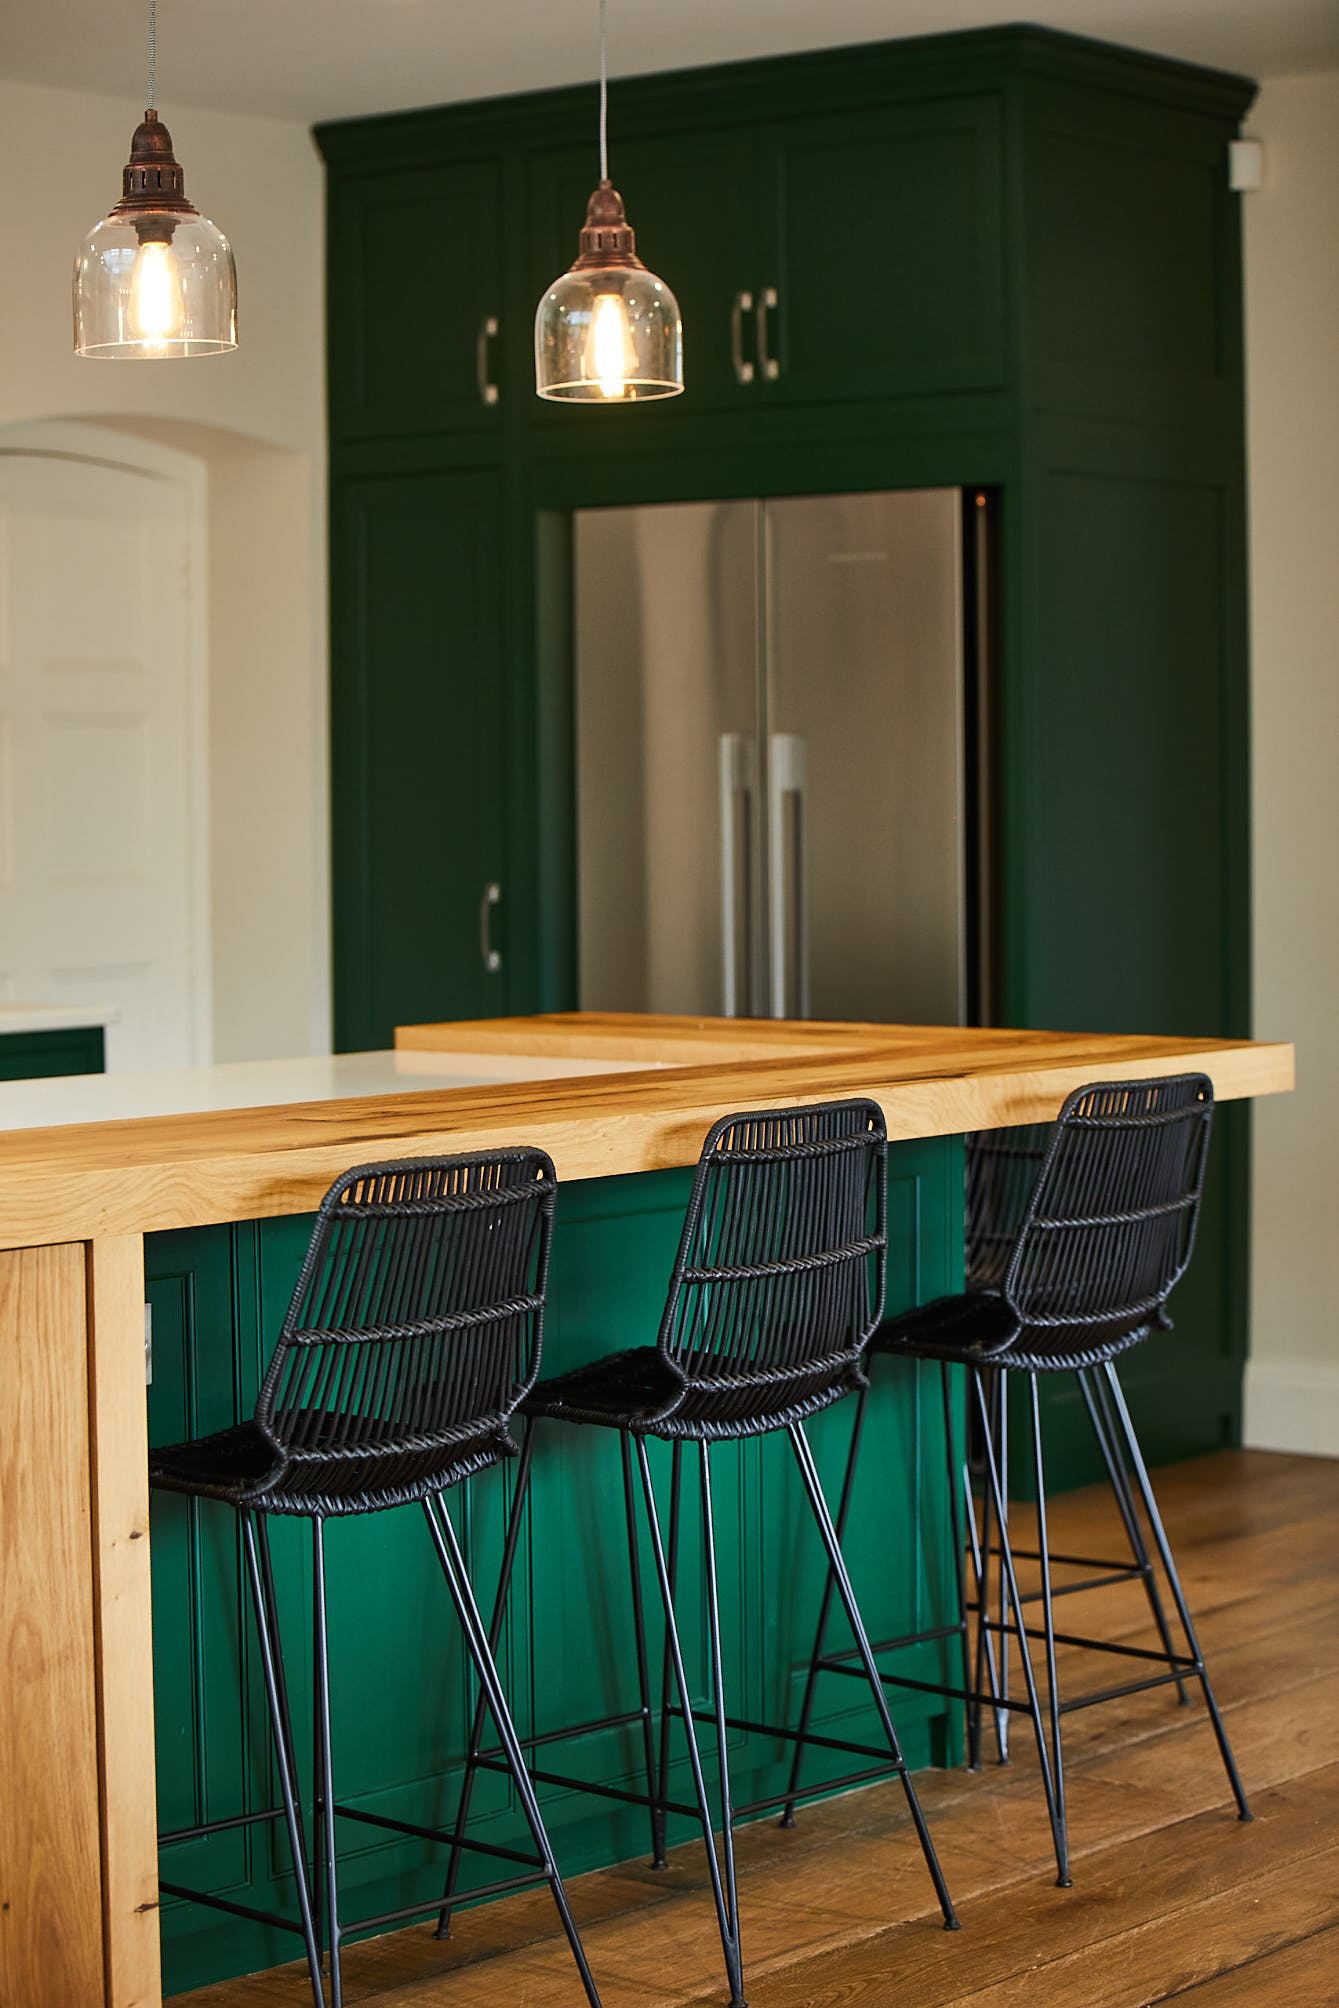 Black bar stools sit under green kitchen island with glass pendant lights above